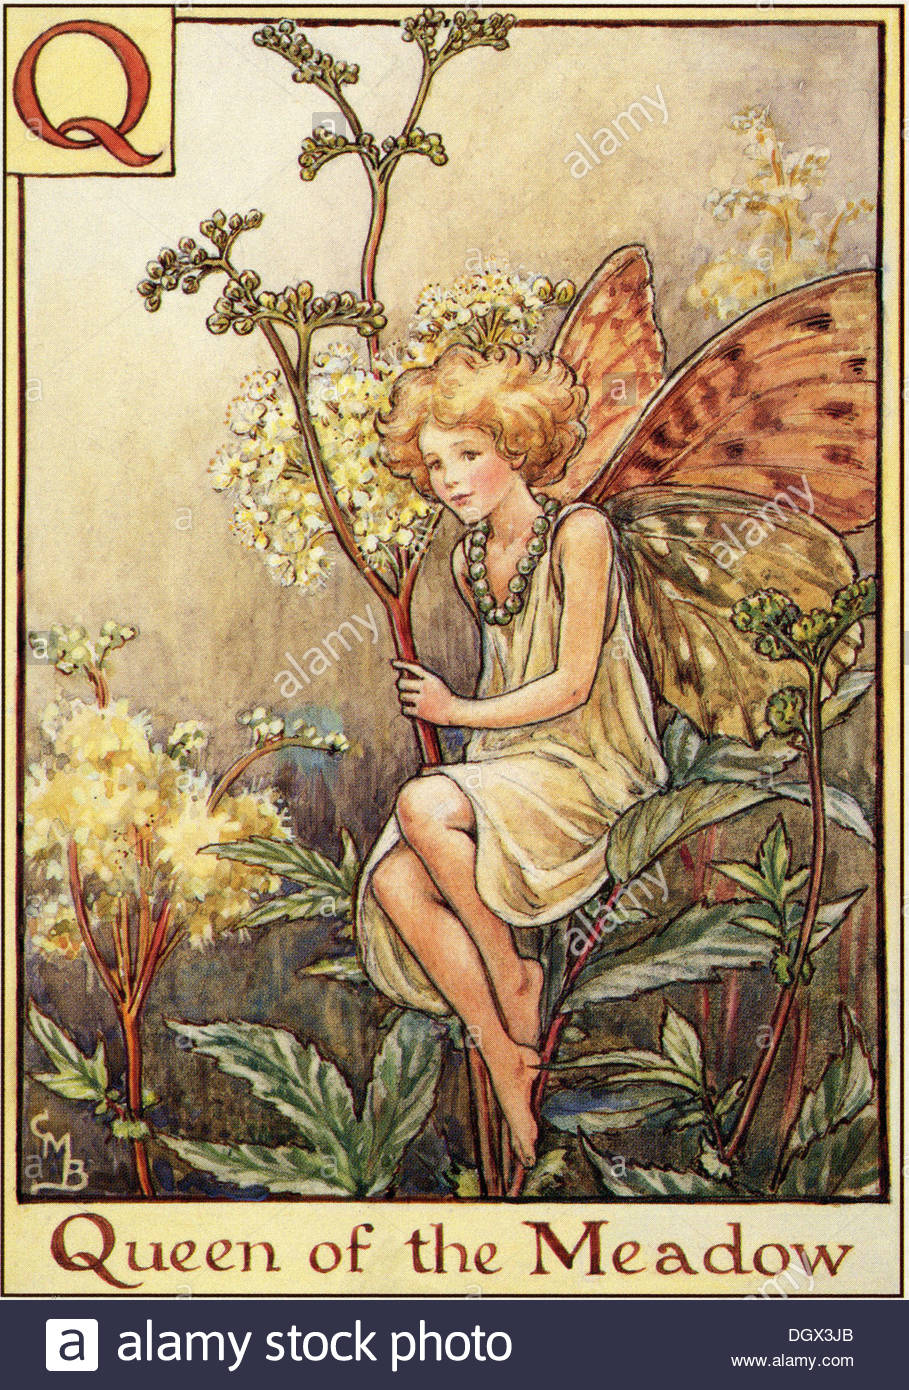 Flower Fairies Illustration by Cicely Mary Barker - The Queen of the Meadow Fairy, 1934 - Stock Image